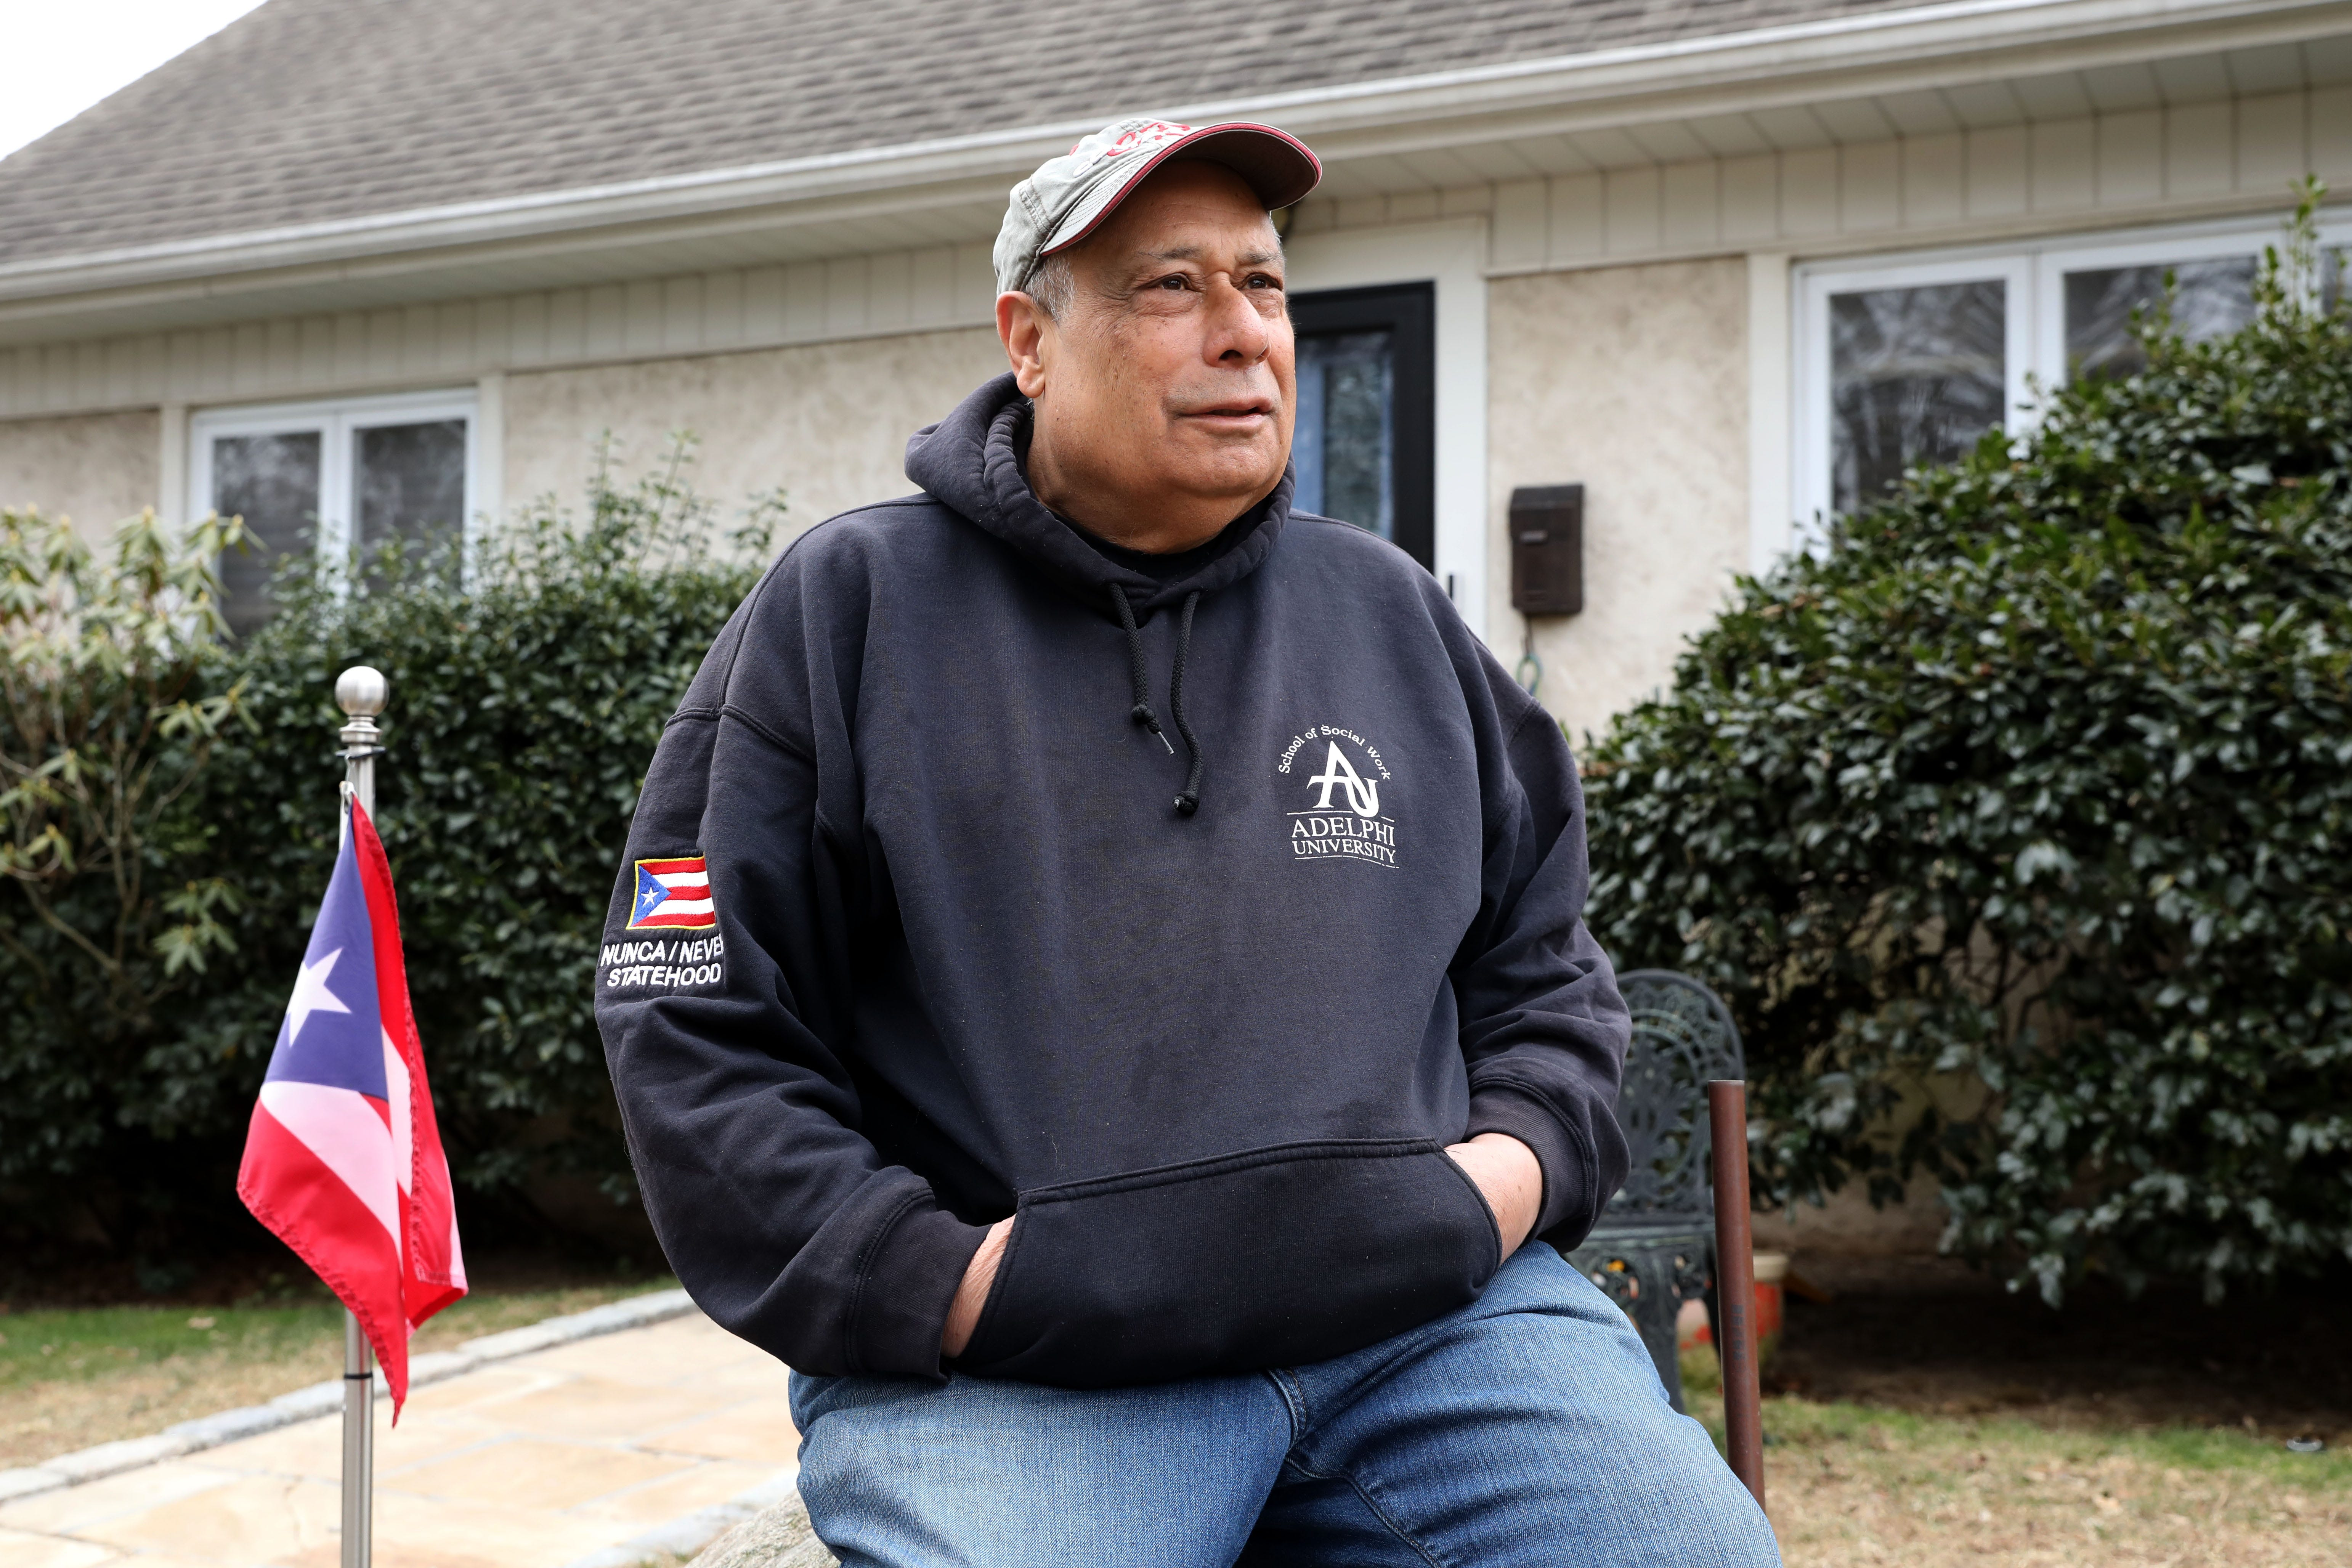 Activist and educator Luis Quiros sits outside his home in Mamaroneck March 16, 2021. Quiros, a proud Puerto Rican, sits beside a Puerto Rican flag that his neighbor asked him to take down and replace with the United States flag.